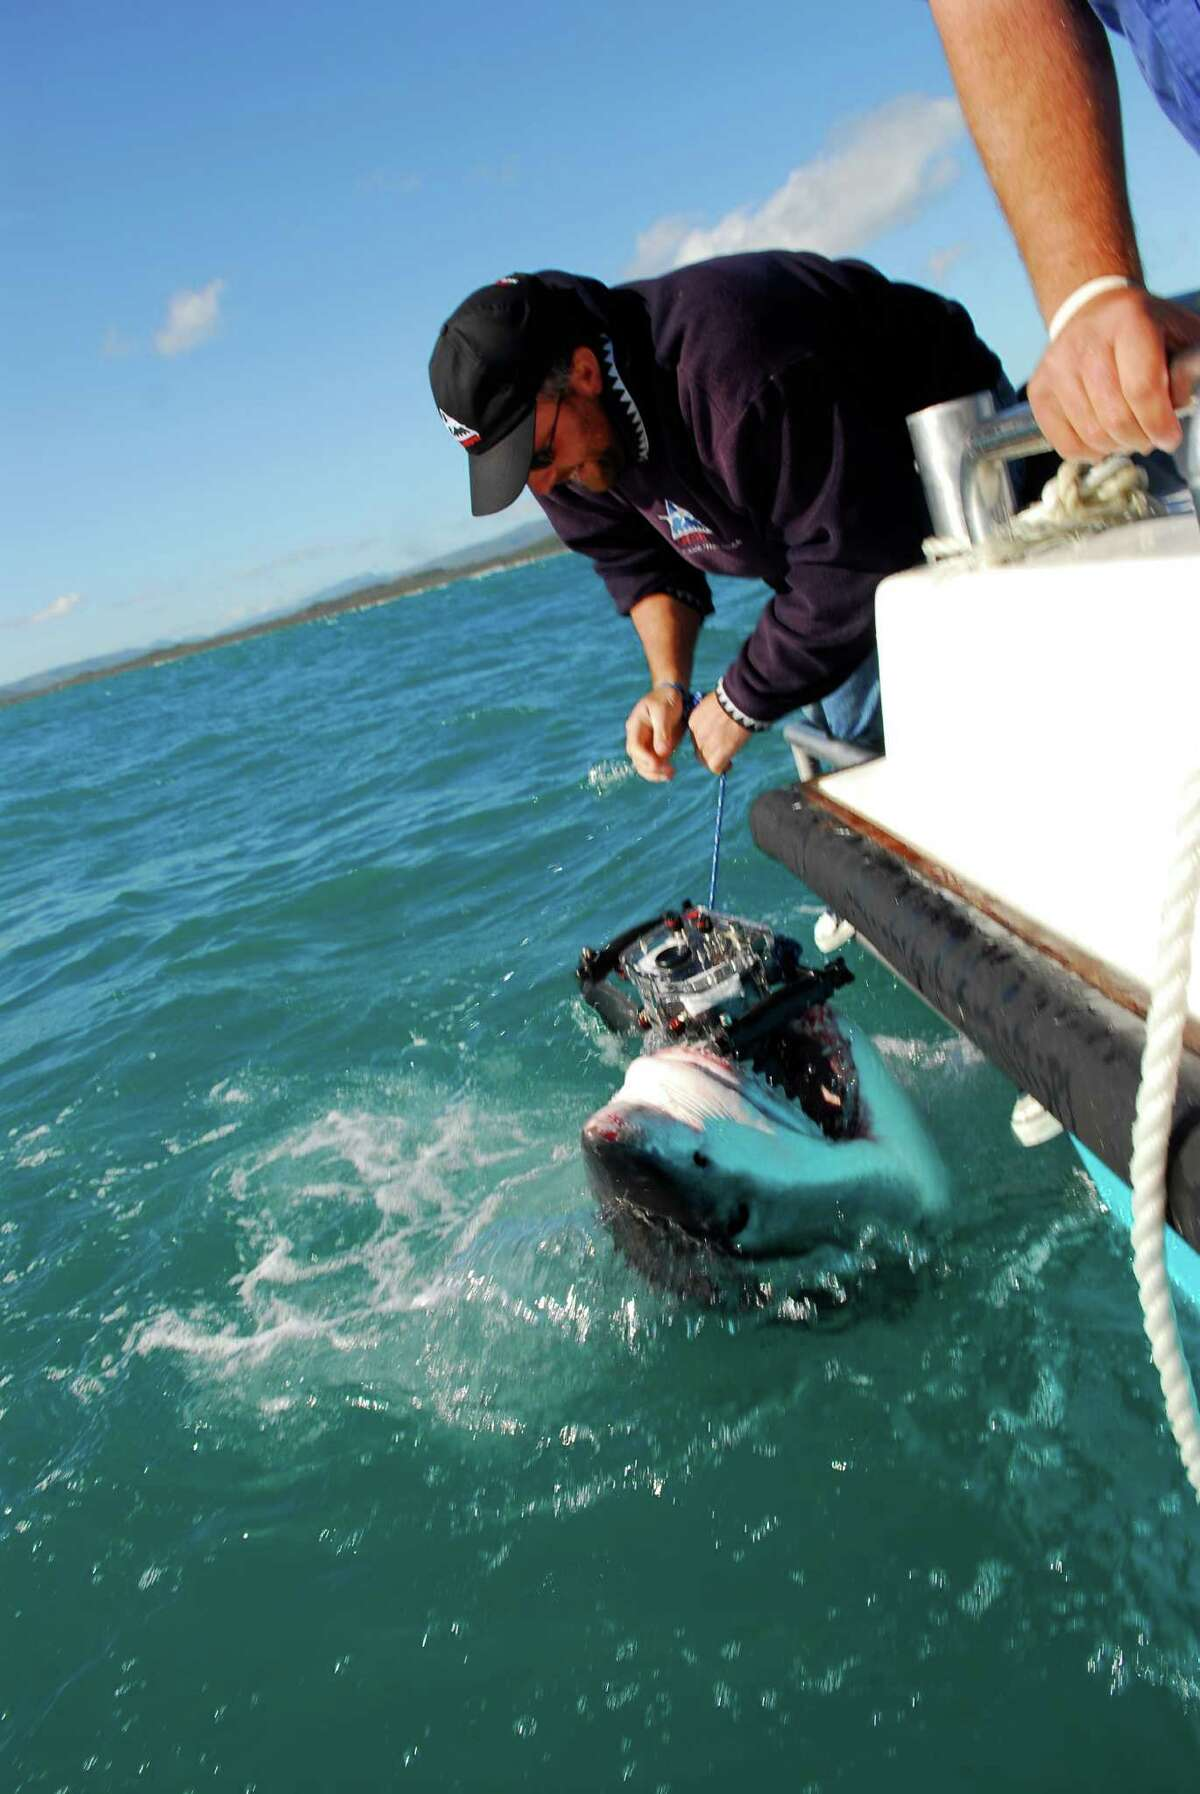 A great white shark bites Michael's camera as he tried to photograph it for his finprinting project in the sea off Dyer Island, South Africa. An international team of scientists led by a British University are building an extraordinary new computer system aimed at identifying every single member of one of the world's most feared predators - the Great White Shark. The University of Bristol is developing software that will automatically recognise individual dorsal fins of animals cruising the world's oceans. For the first time ever it will add to a central database experts hope will give them a unique insight into the species' population and one day give them the truth on numbers of the animals and their movements. Spectacular pictures show how Swiss marine biologist Michael Scholl, Founder and Director of the White Shark Trust, spent 10 years photographing over 1,500 great white's using his 'finprinting' technique. His is currently the world's biggest great white database and will be the basis for the new computer system. (Photo by Sultan Bin Al Shiekh Mejren / Barcroft Media / Getty Images)